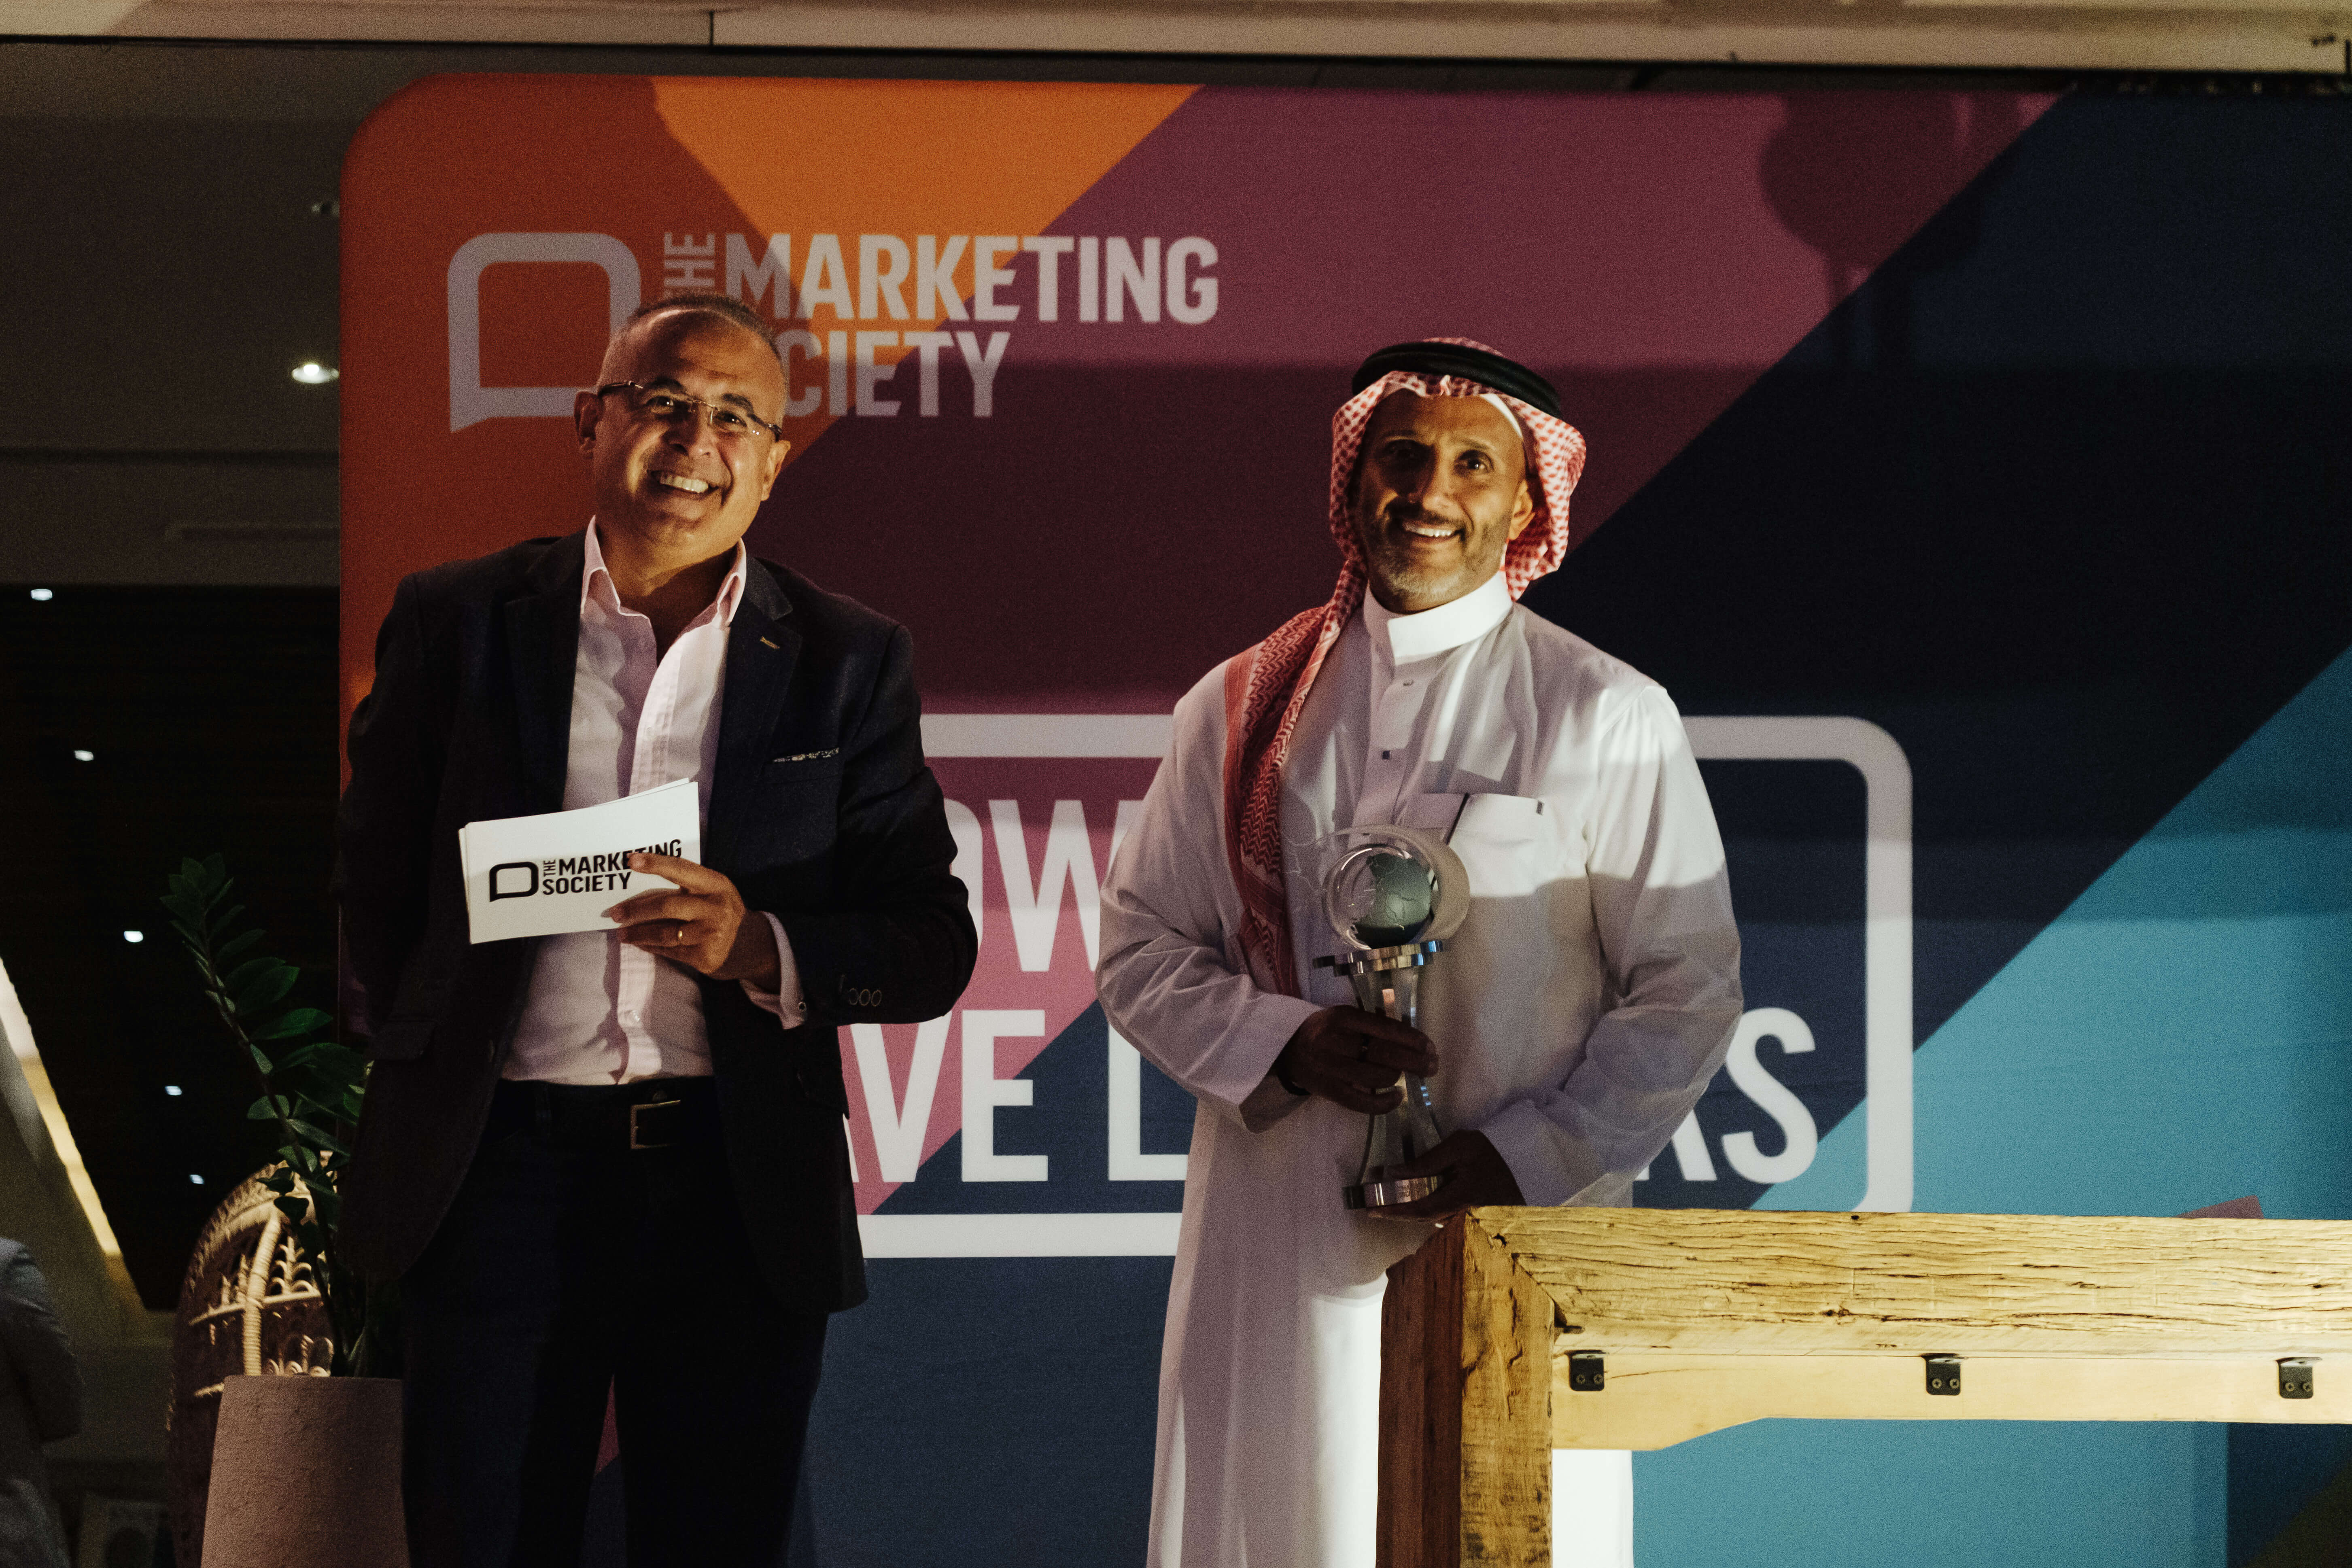 emirates-airline-and-visas-mohammed-ismaeel-crowned-winners-at-inaugural-gcc-awards-from-the-marketing-society